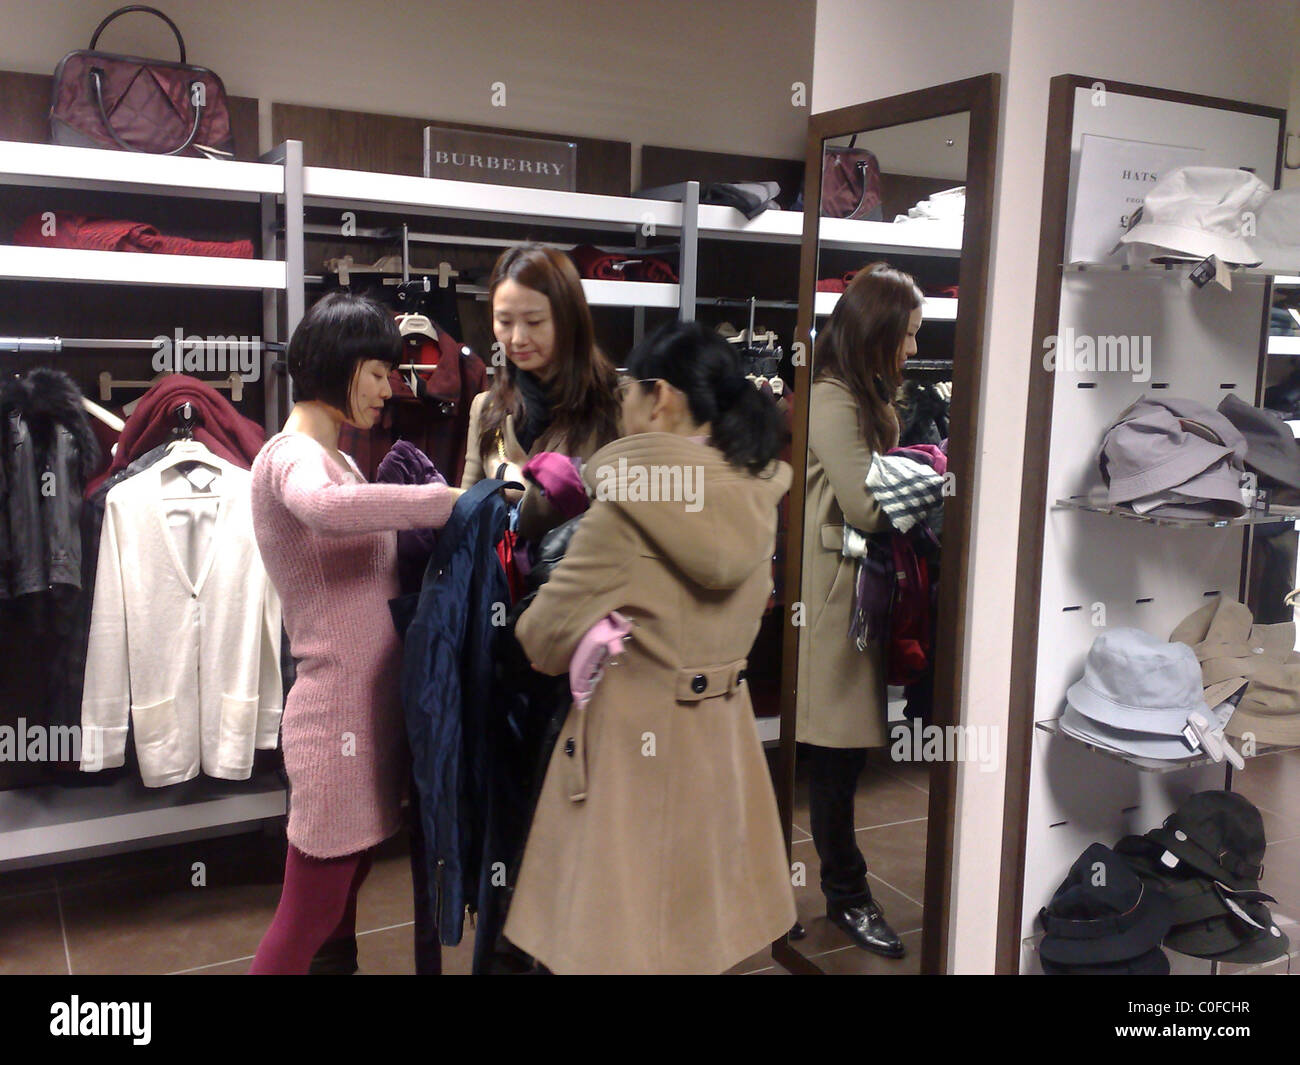 factory outlet burberry outlet sale 131r  CHINESE SHOPPERS AT BURBERRY OUTLET DISCOUNT STORE IN HACKNEY, LONDON